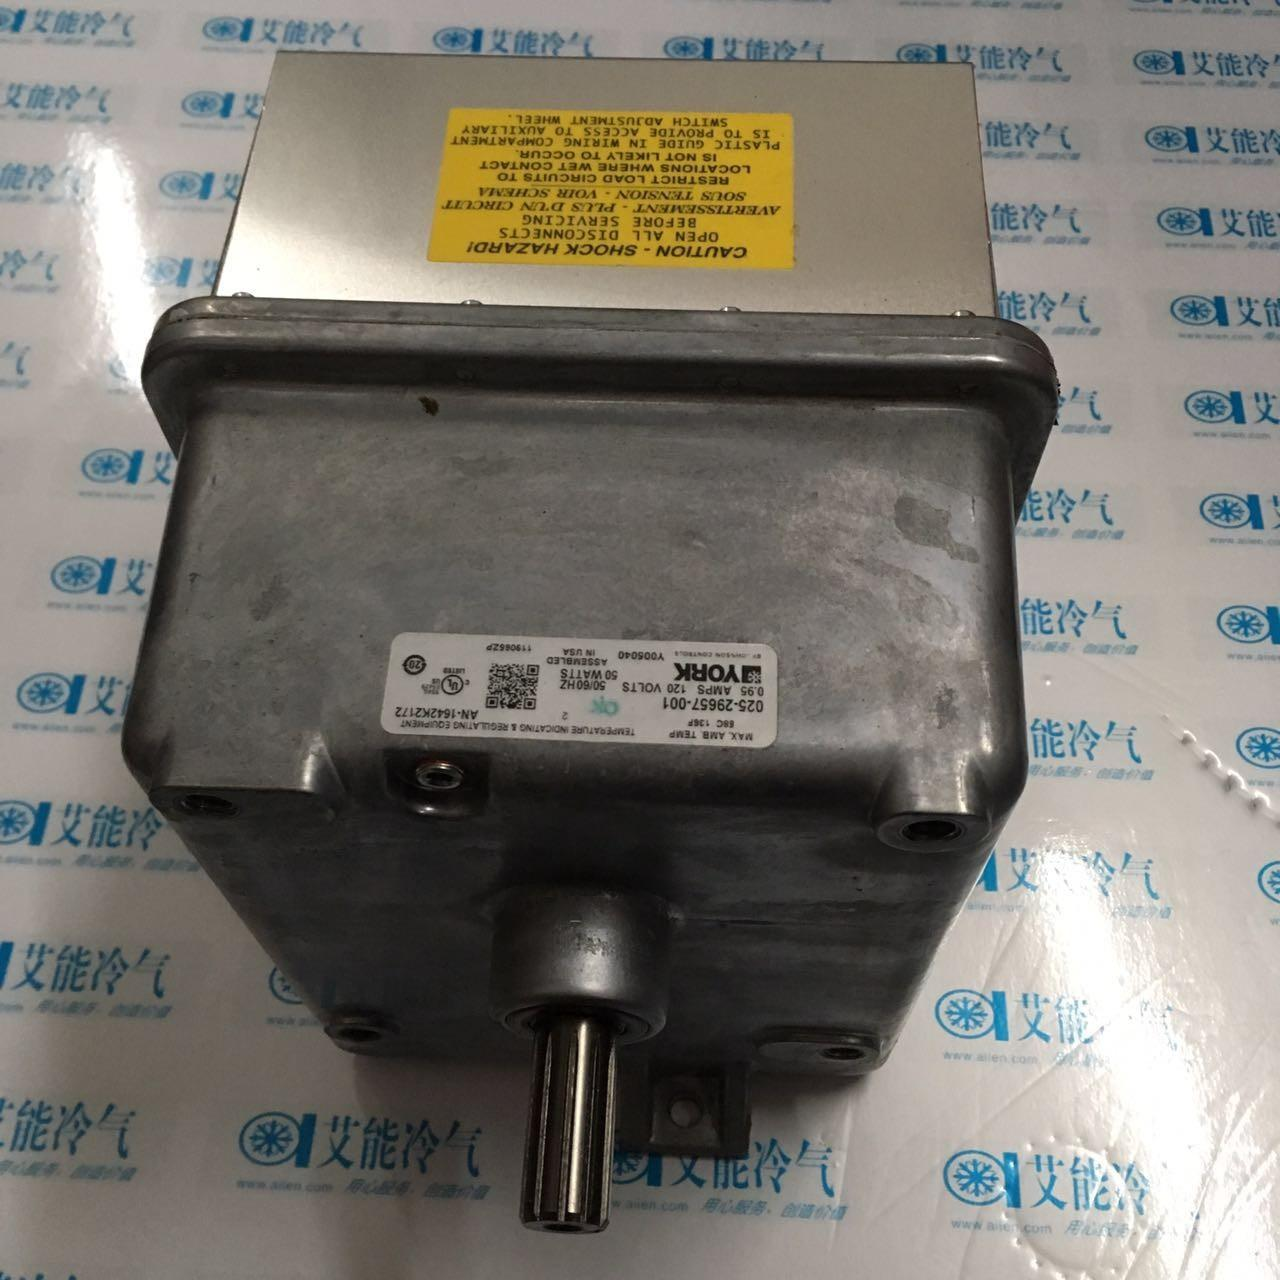 Wholesale YORK CHILLER ACTUATOR 371 49340 105 ACTUATOR 025-29657-001 from china suppliers